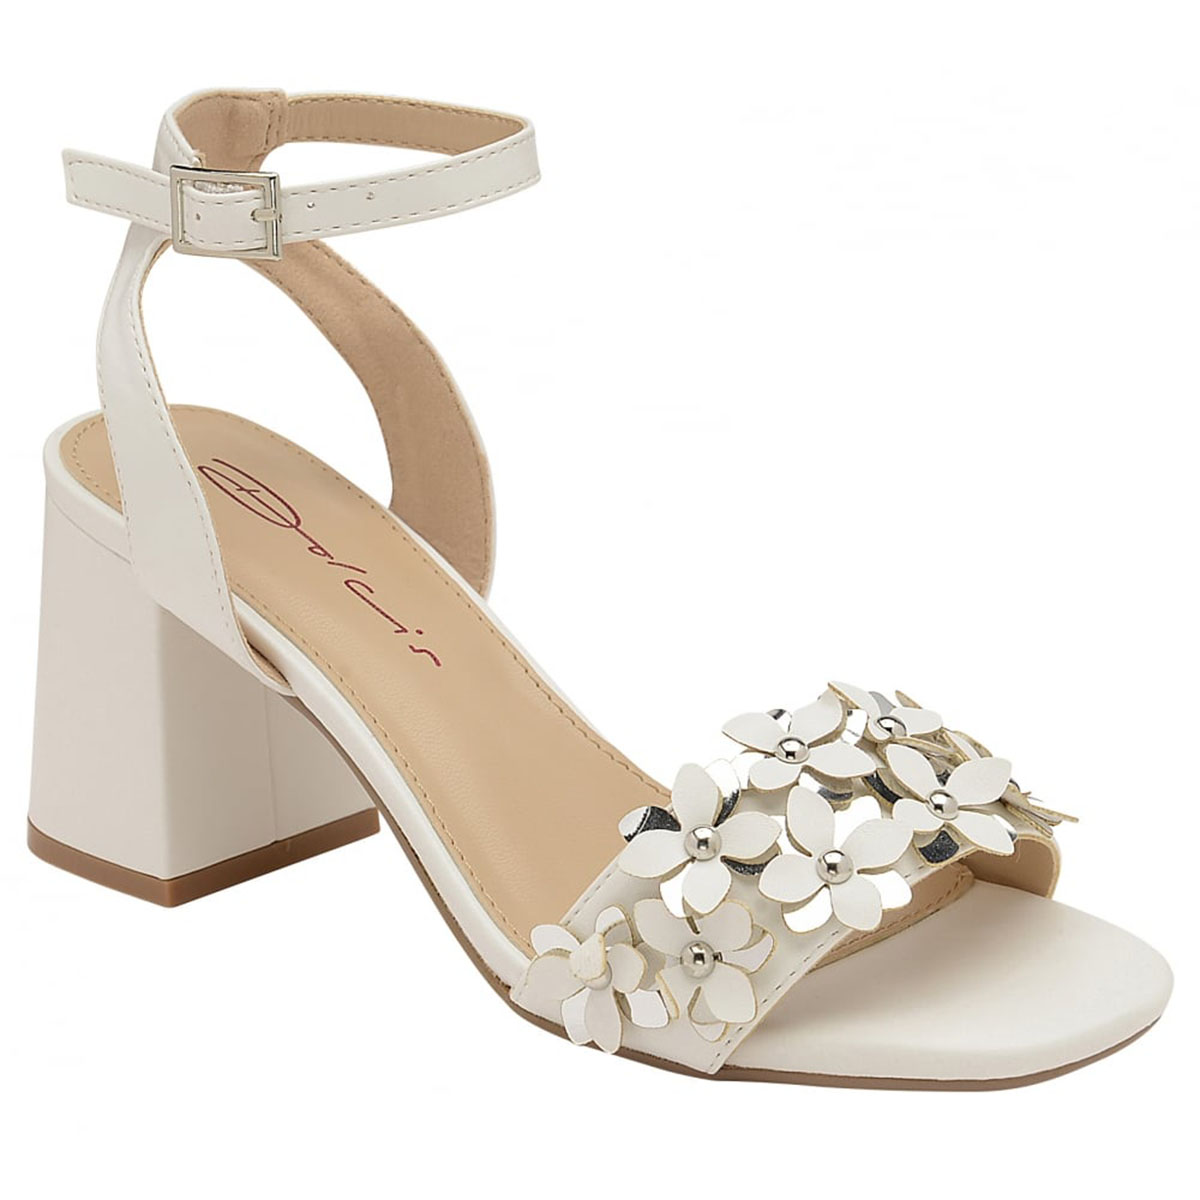 ac55c5d886e Sentinel LADIES DOLCIS NIAMH WHITE BLOCK HEEL ANKLE PEEP-TOE SANDALS  STRAPPY SHOES UK 3-